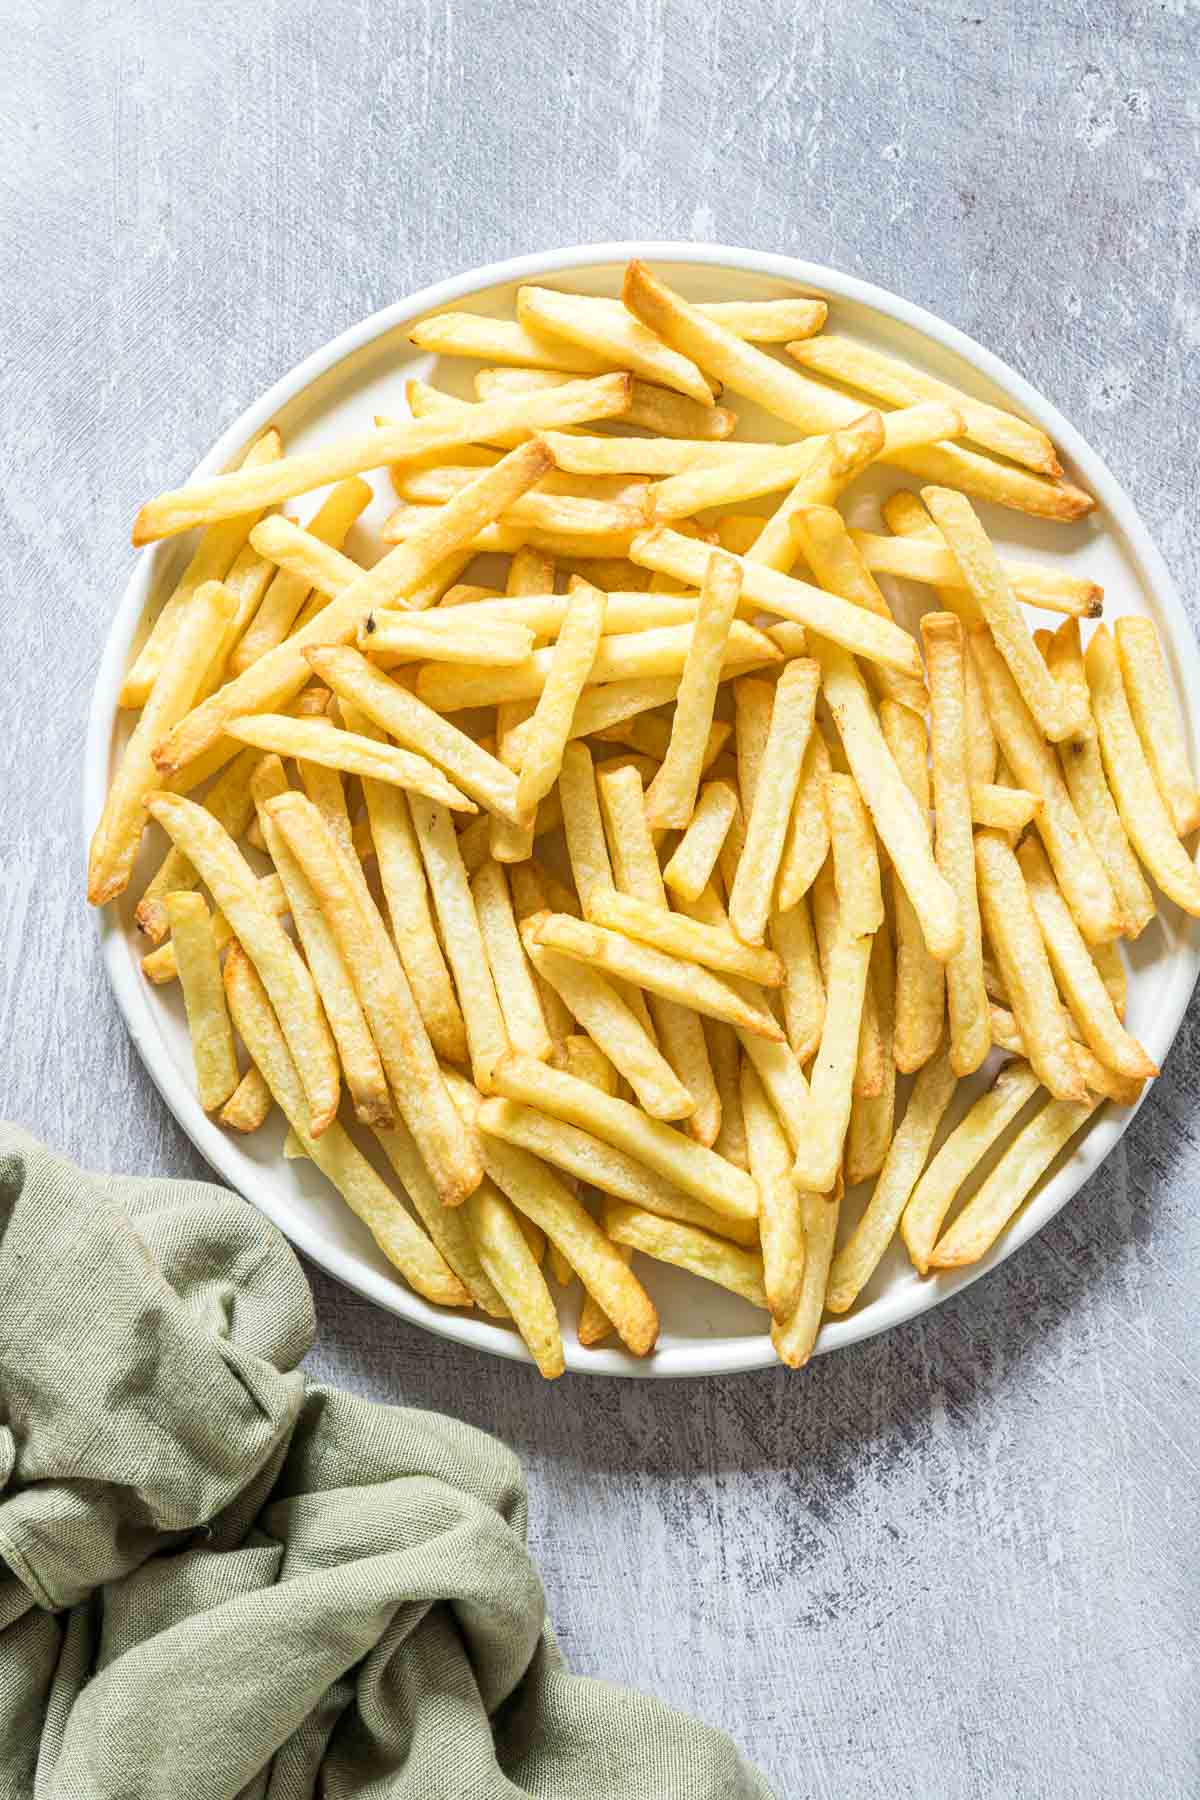 a serving of air fryer reheat fries on a white plate with green cloth napkin